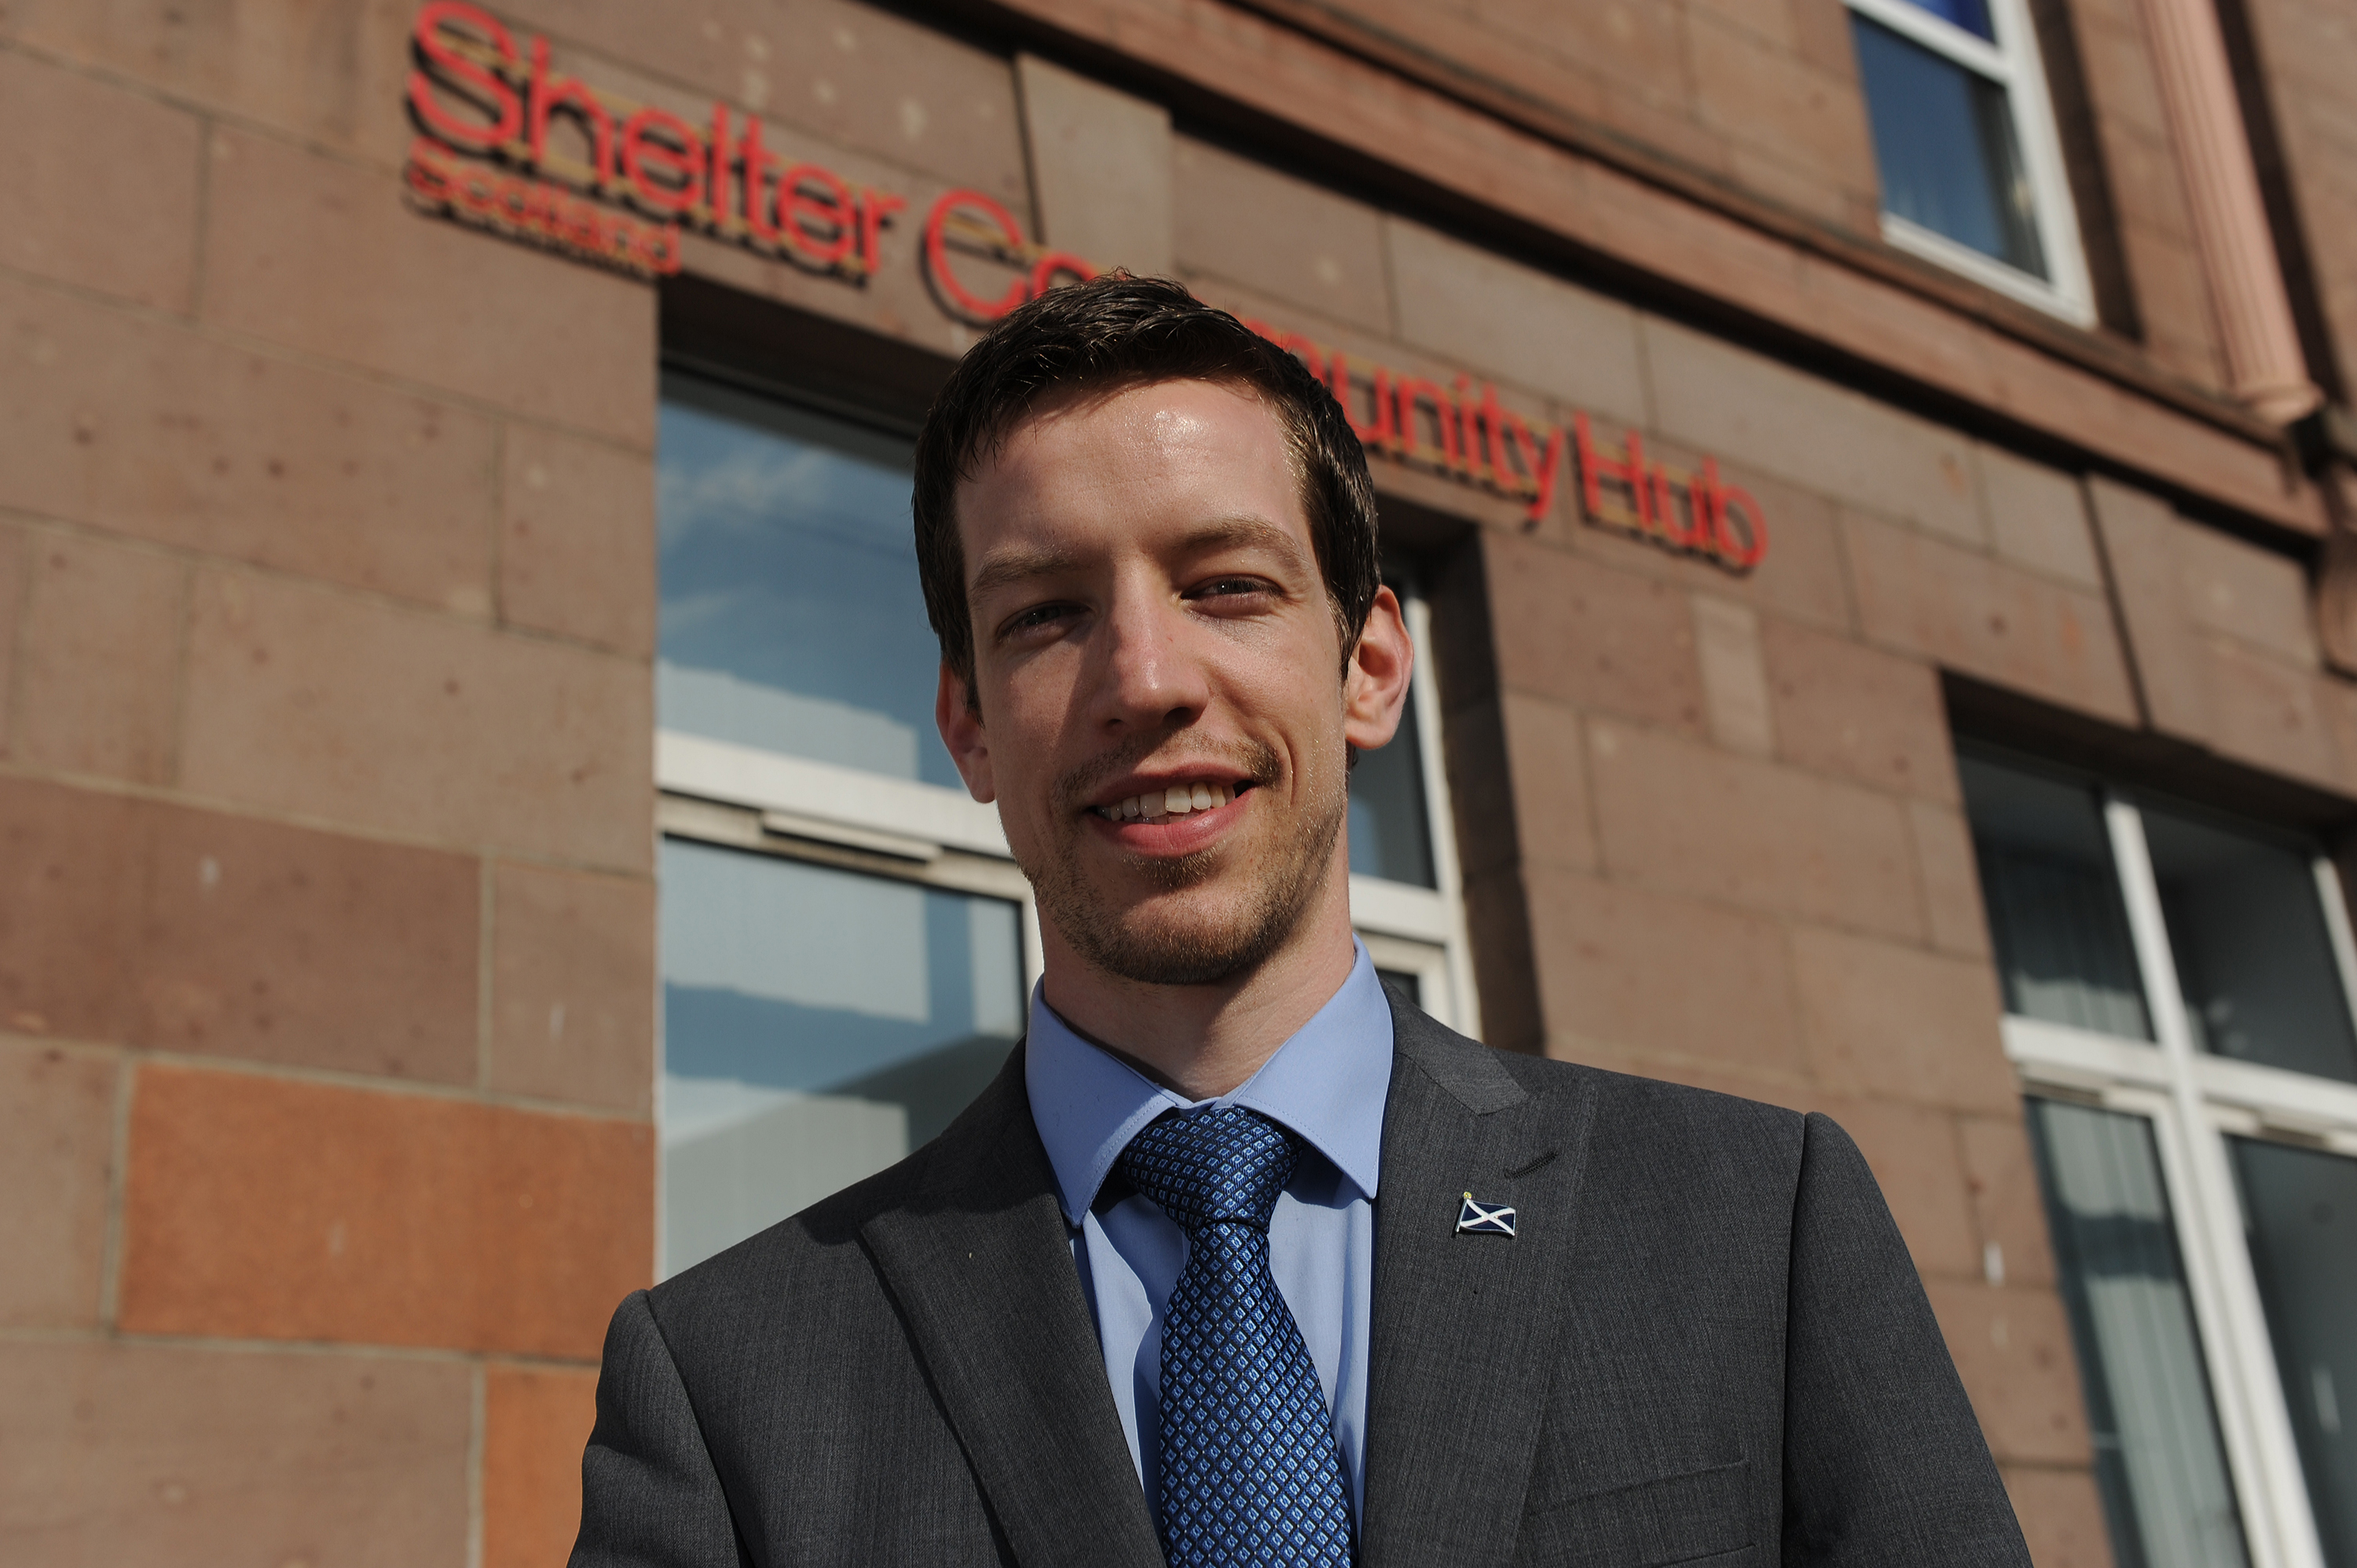 The council's leader, John Alexander, is backing Councillor Murray after the feud escalated